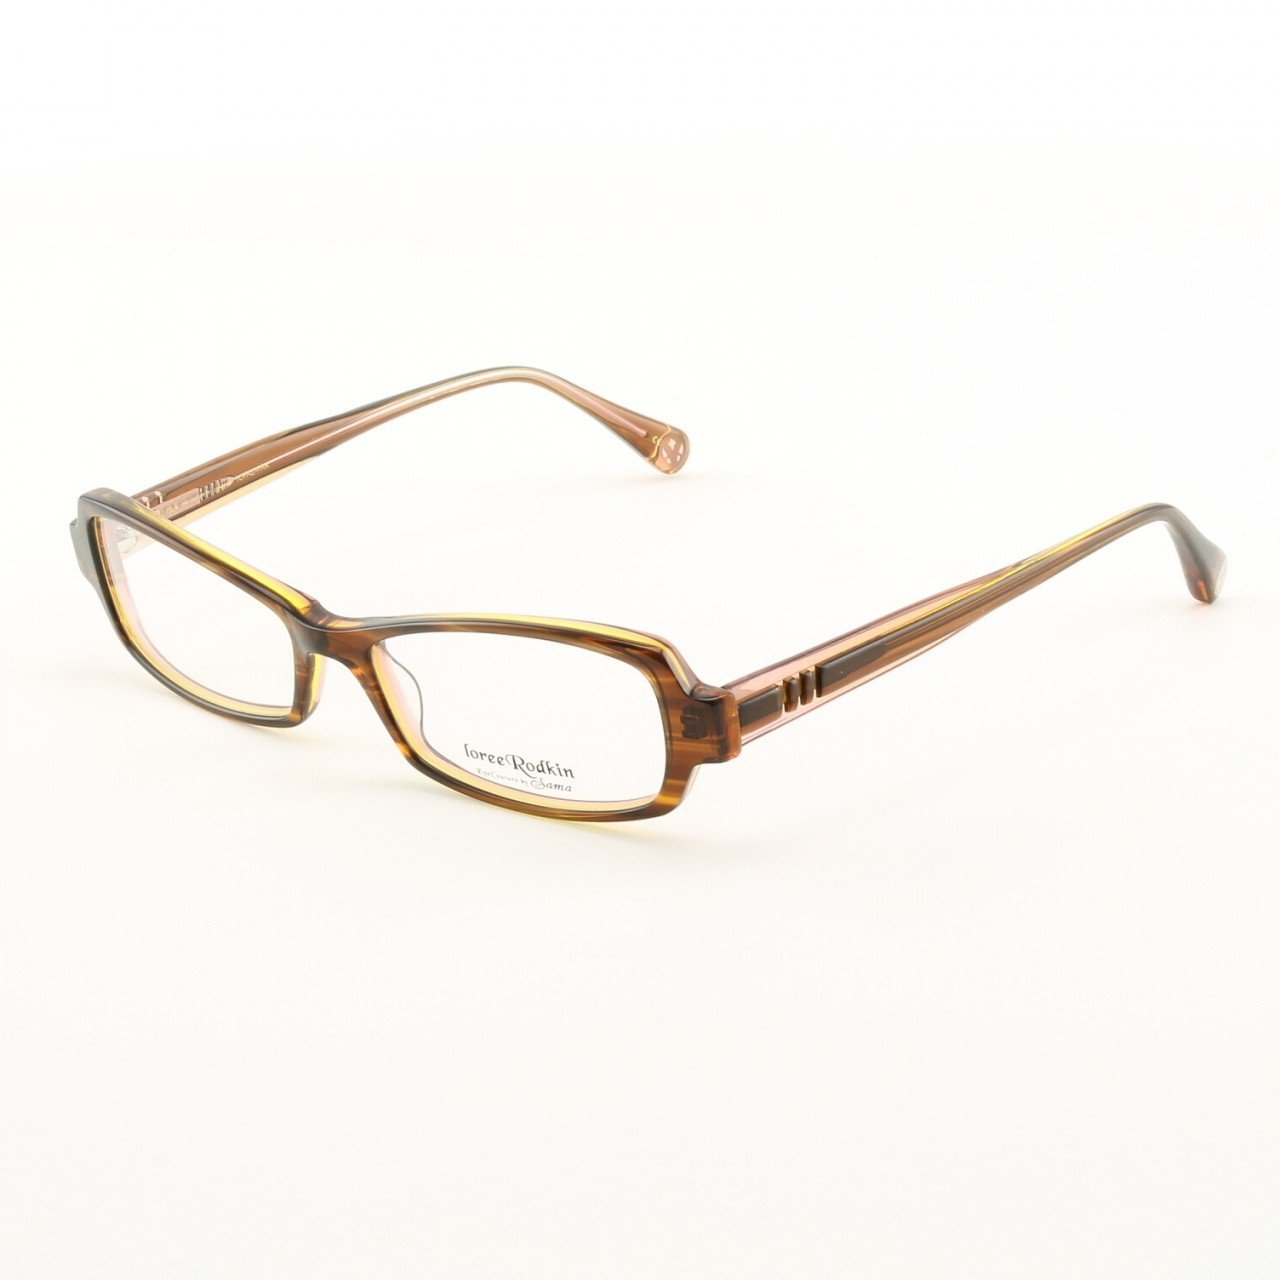 Loree Rodkin Isla Eyeglasses by Sama Col. Topaz and Pink with Clear Lenses